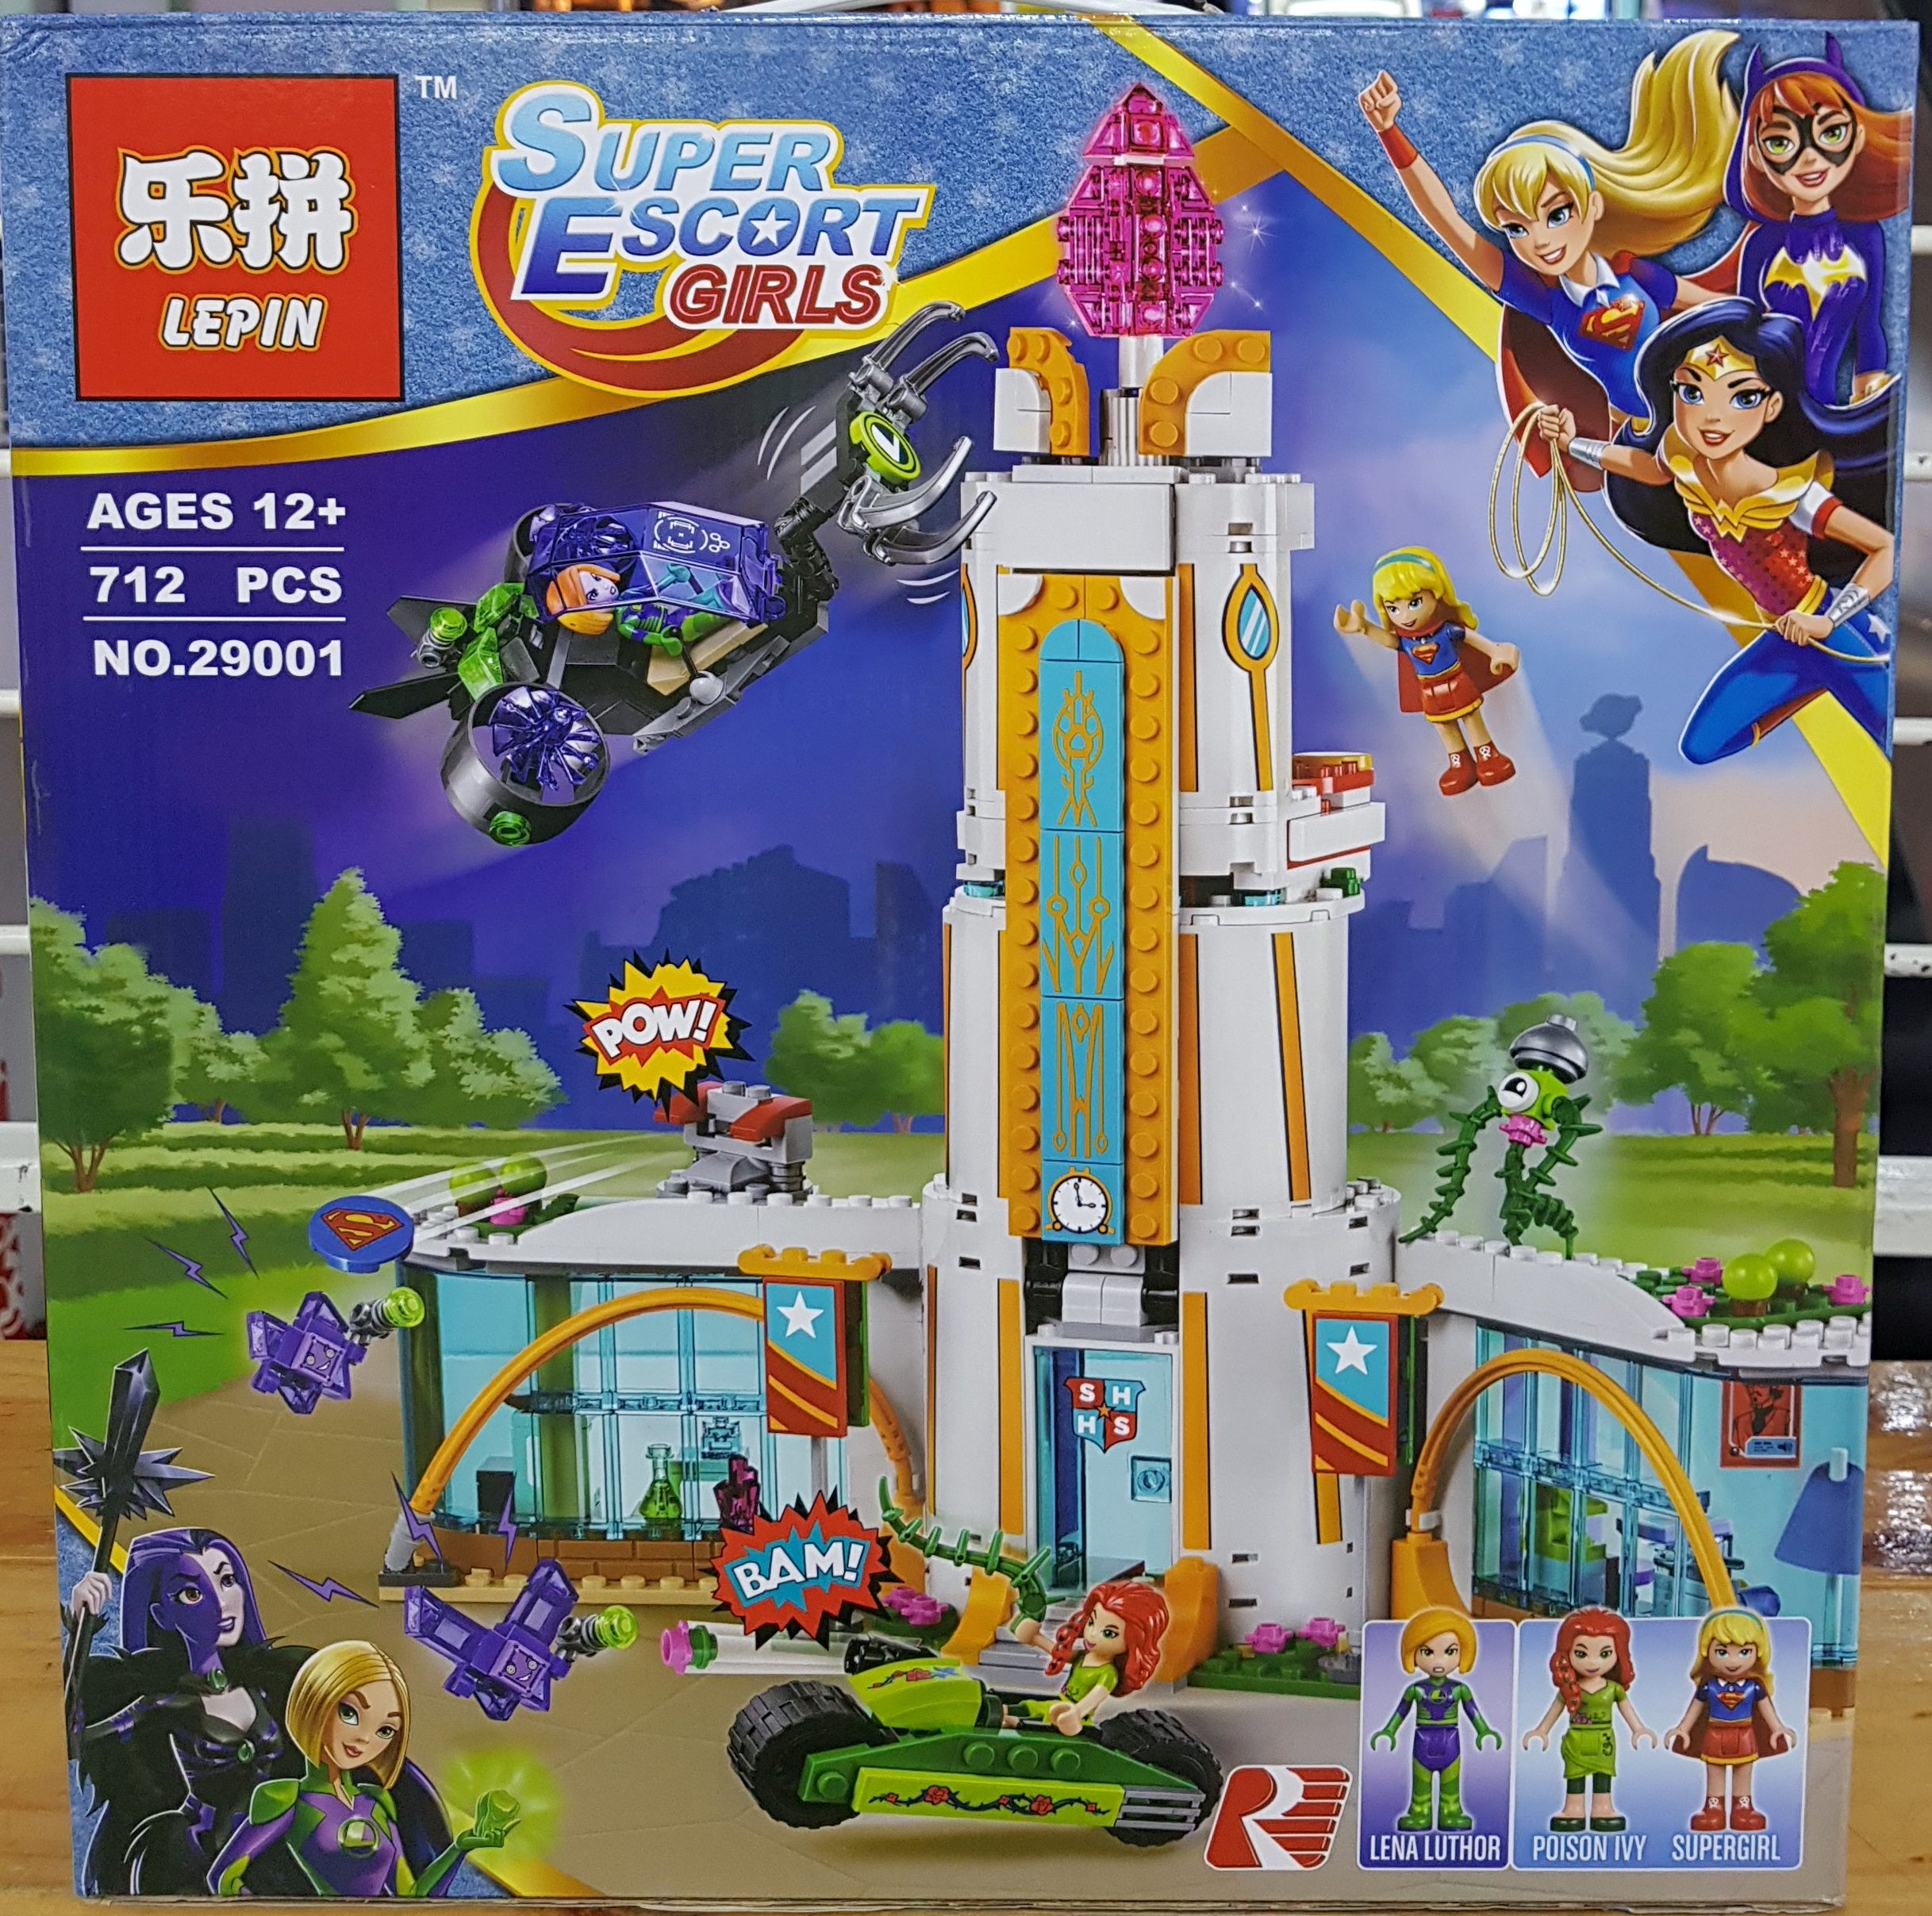 LEPIN SUPER ESCORT GIRLS 29001 (712ชิ้น)